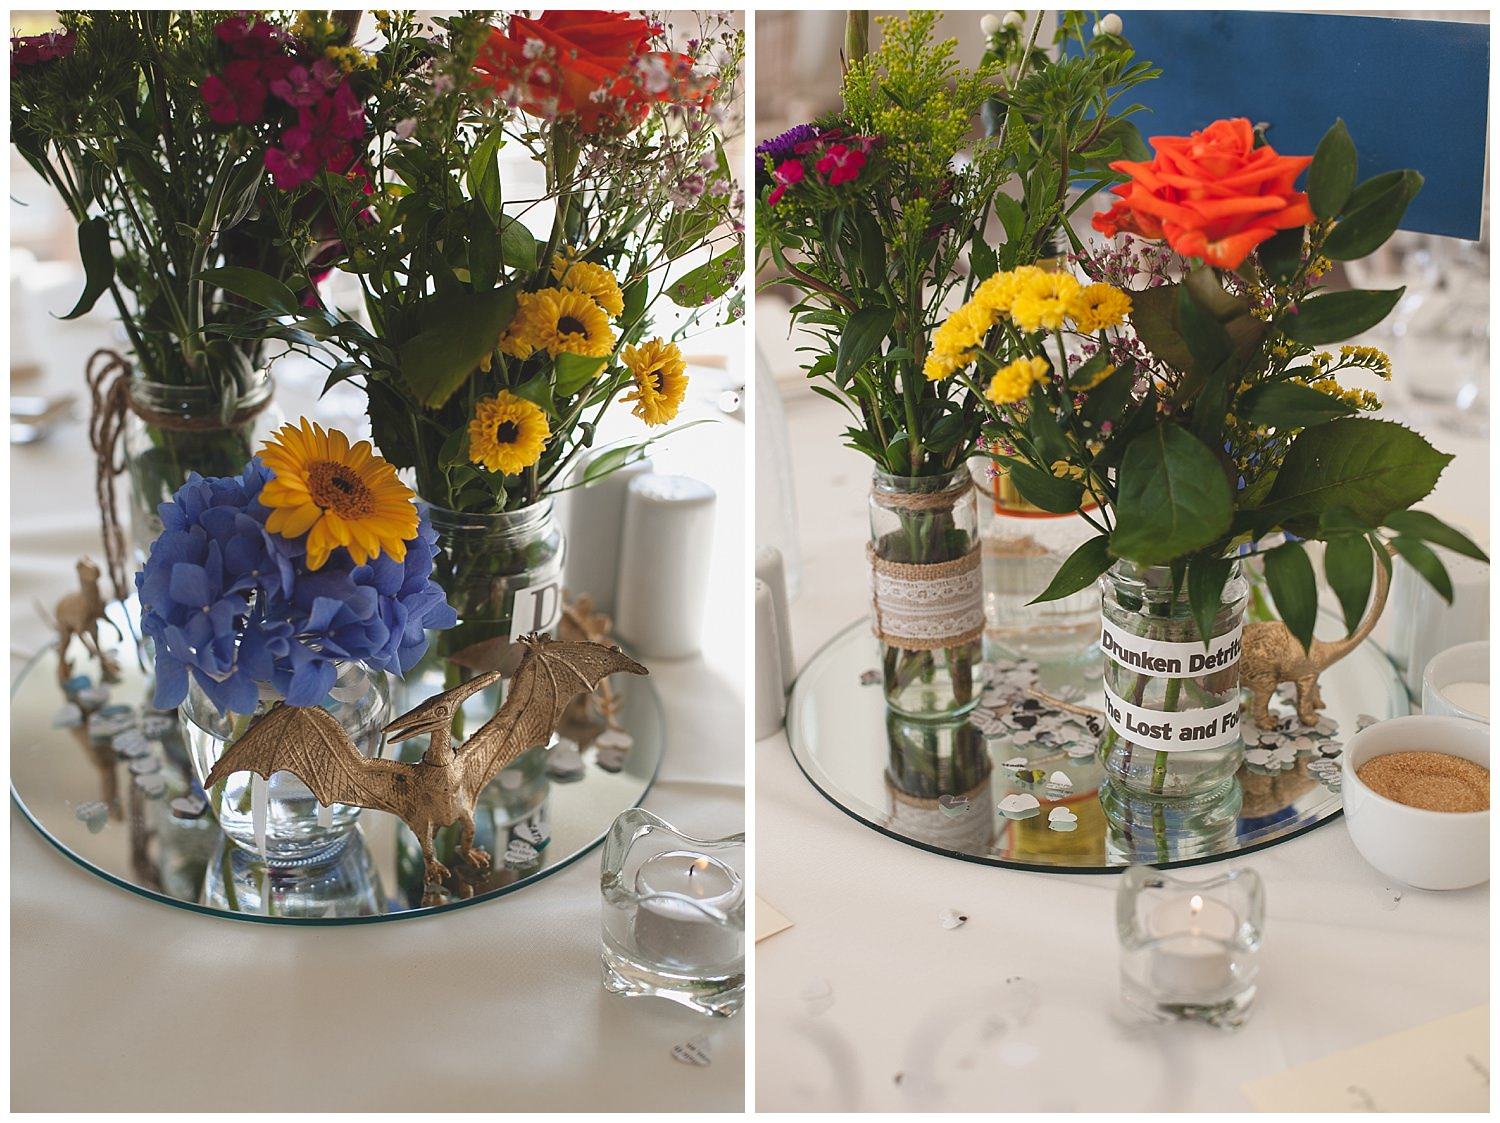 Table centre pieces with Homemade gold sprayed dinosaurs and beautiful summer bouquets in  glass jars